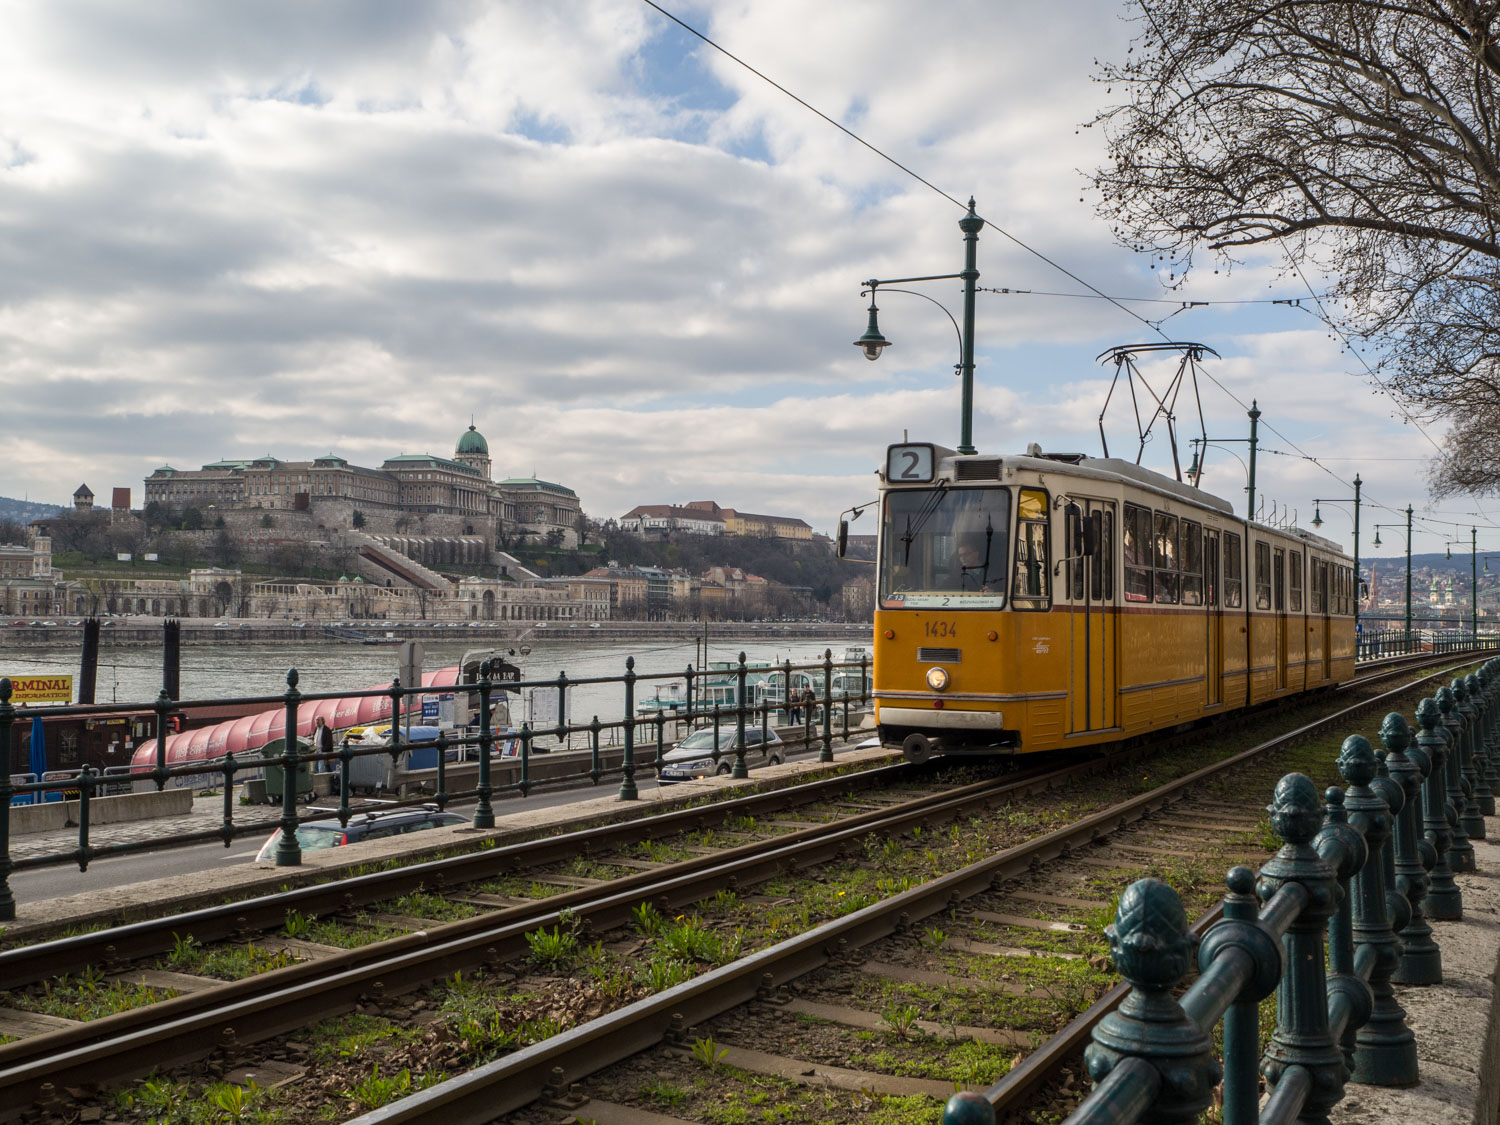 The number 2 tram passes along the Danube.